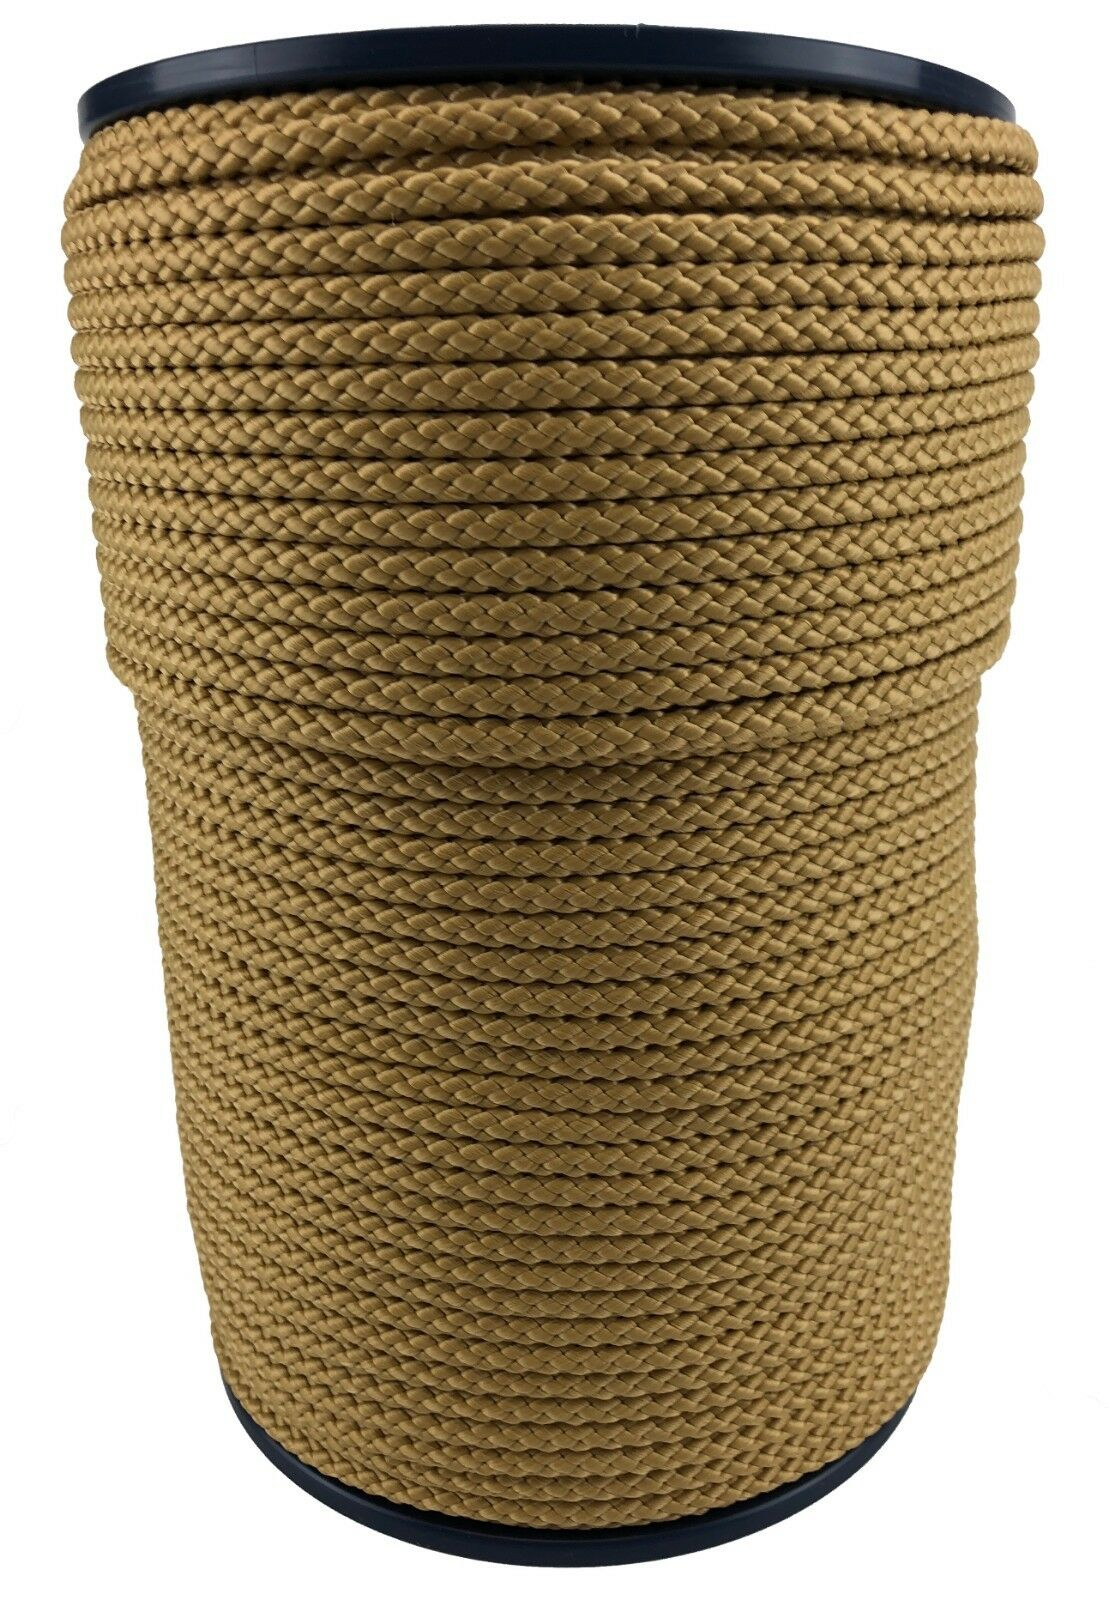 6mm Beige Braided Polypropylene Poly Rope Cord Paracord Drawstring Yacht Sailing